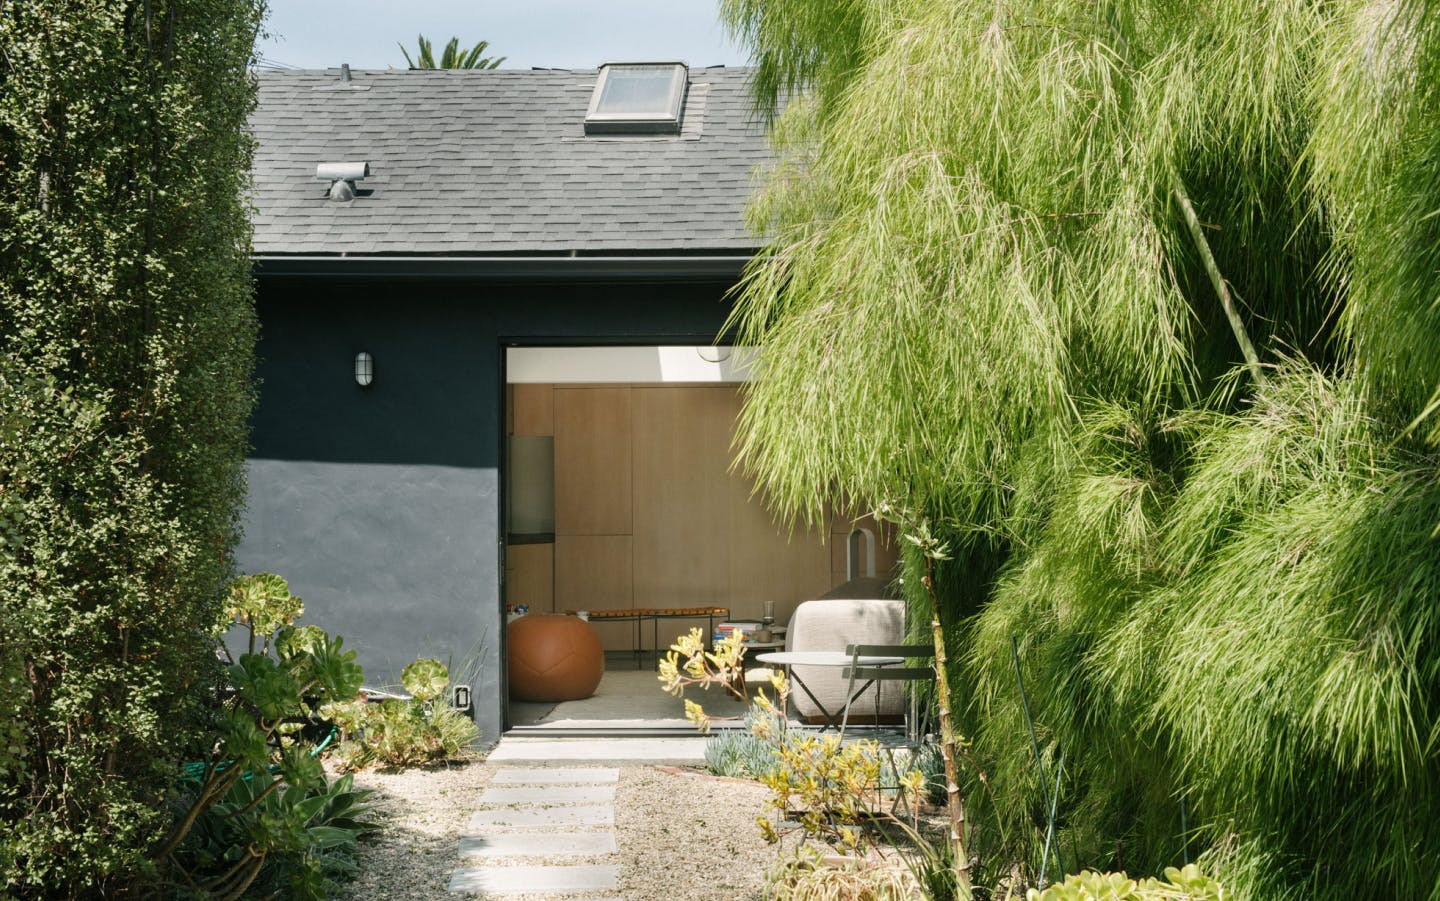 The outside of a bungalow in Venice Beach. There are trees in the foreground and a black bungalow with a large garage door open. Inside you can see two stools and a leather beanbag chair. In the foreground there's also a little bistro table set